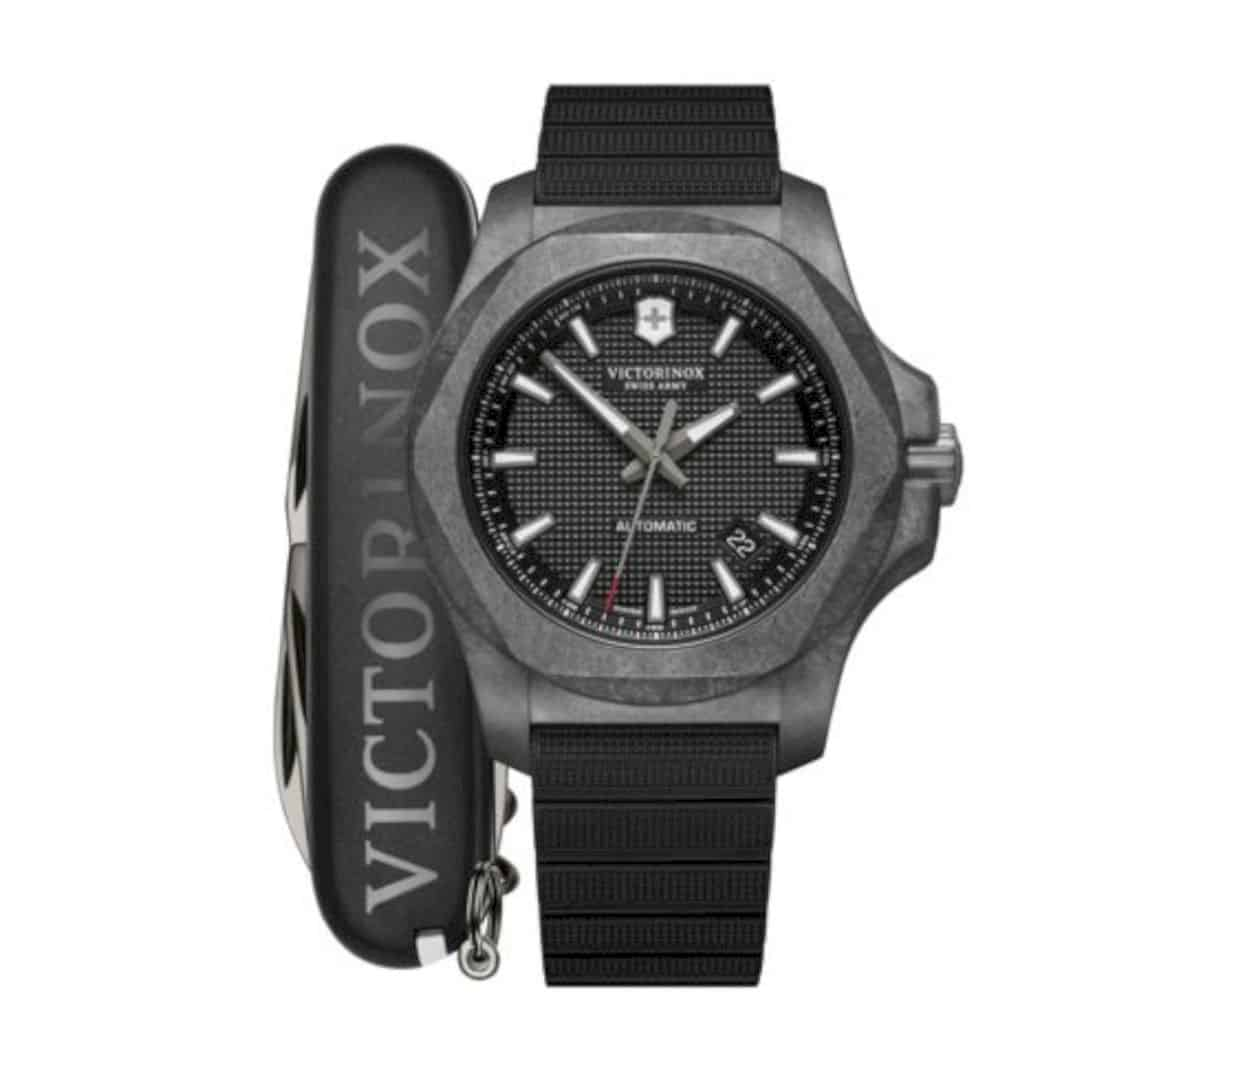 Victorinox I N O X Carbon Mechanical 7